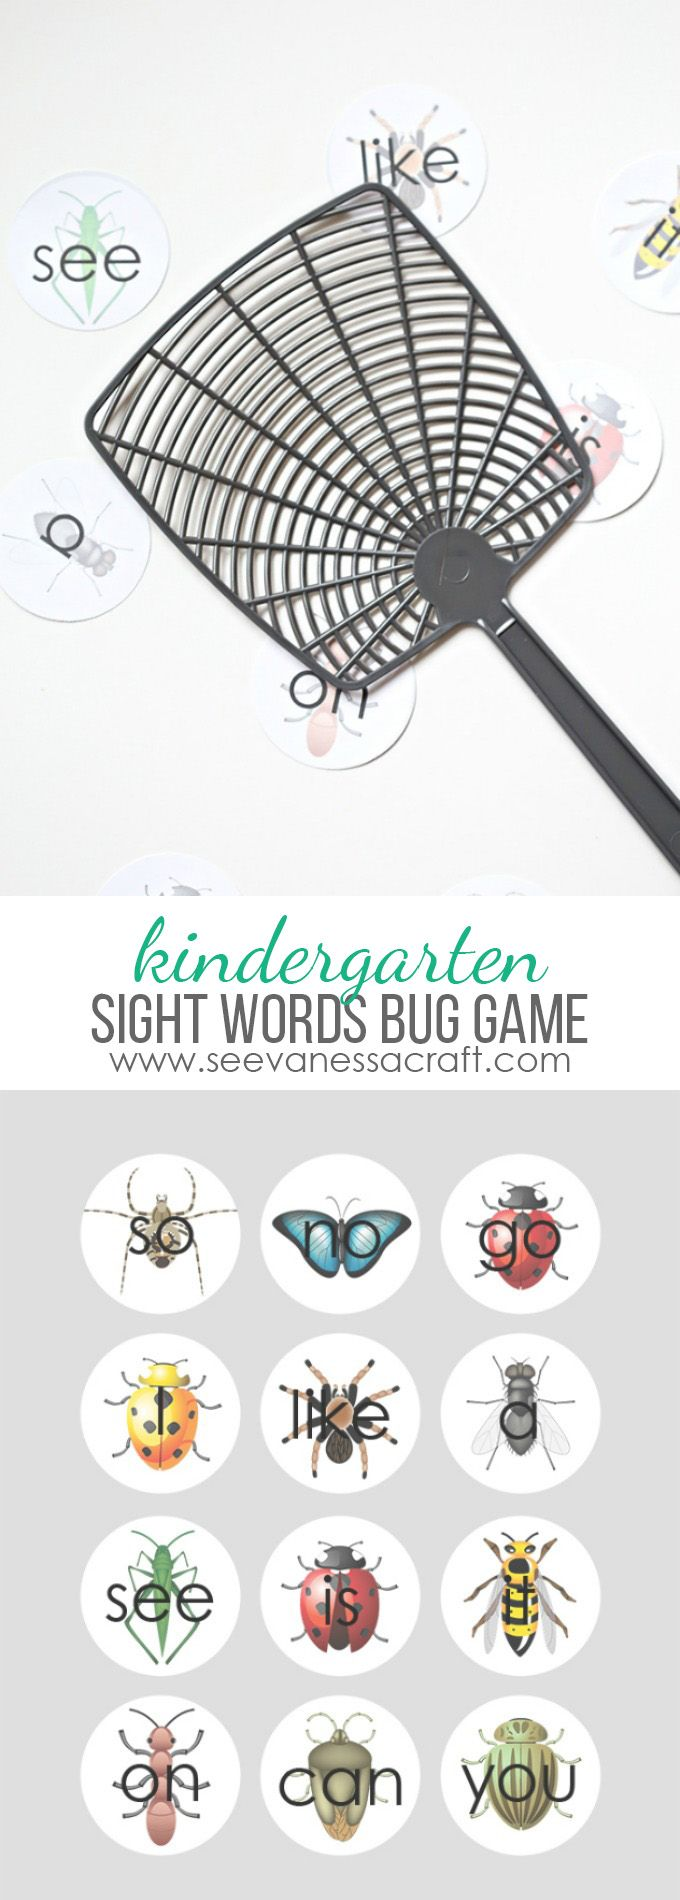 Sight Words Bug Game for Kindergarten - Free Printable